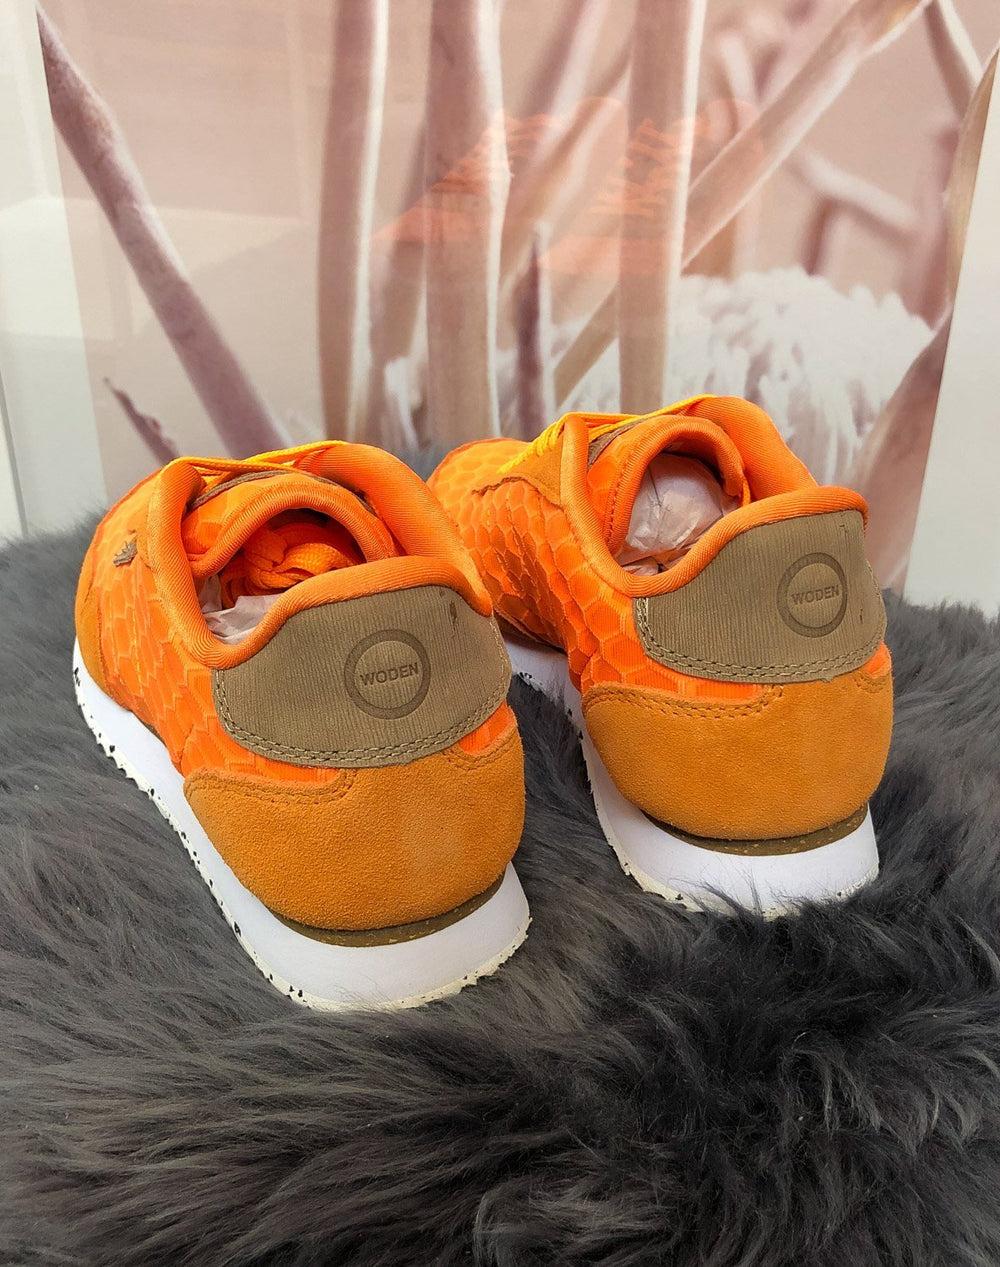 Woden Nora II mesh sneakers bright orange - Online-Mode